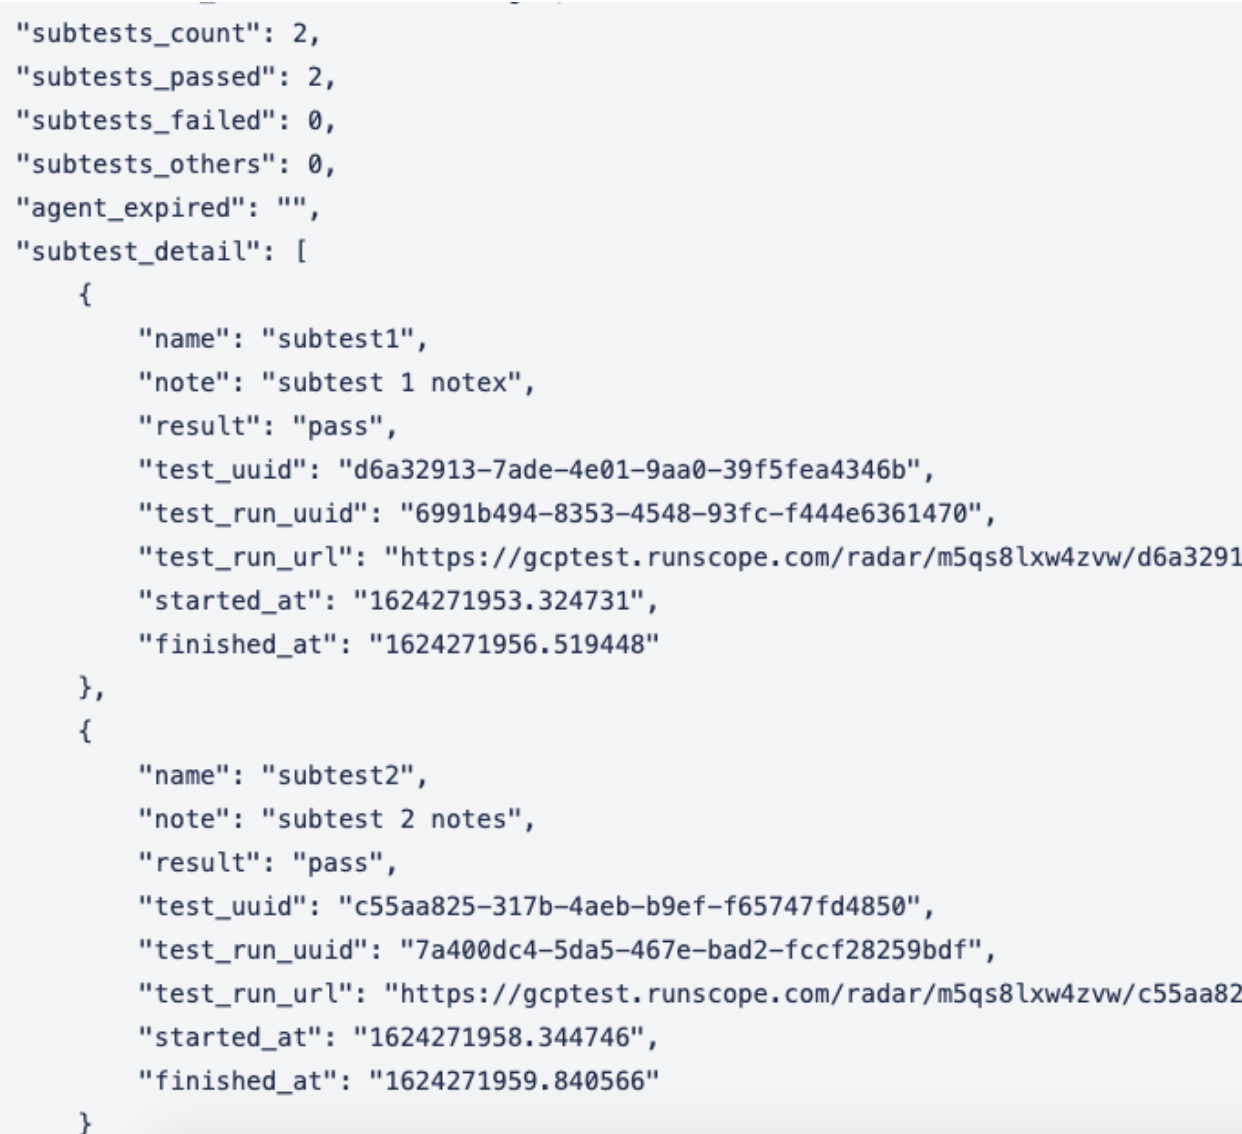 API Monitoring Test Results API Enhanced to include Subtests Details